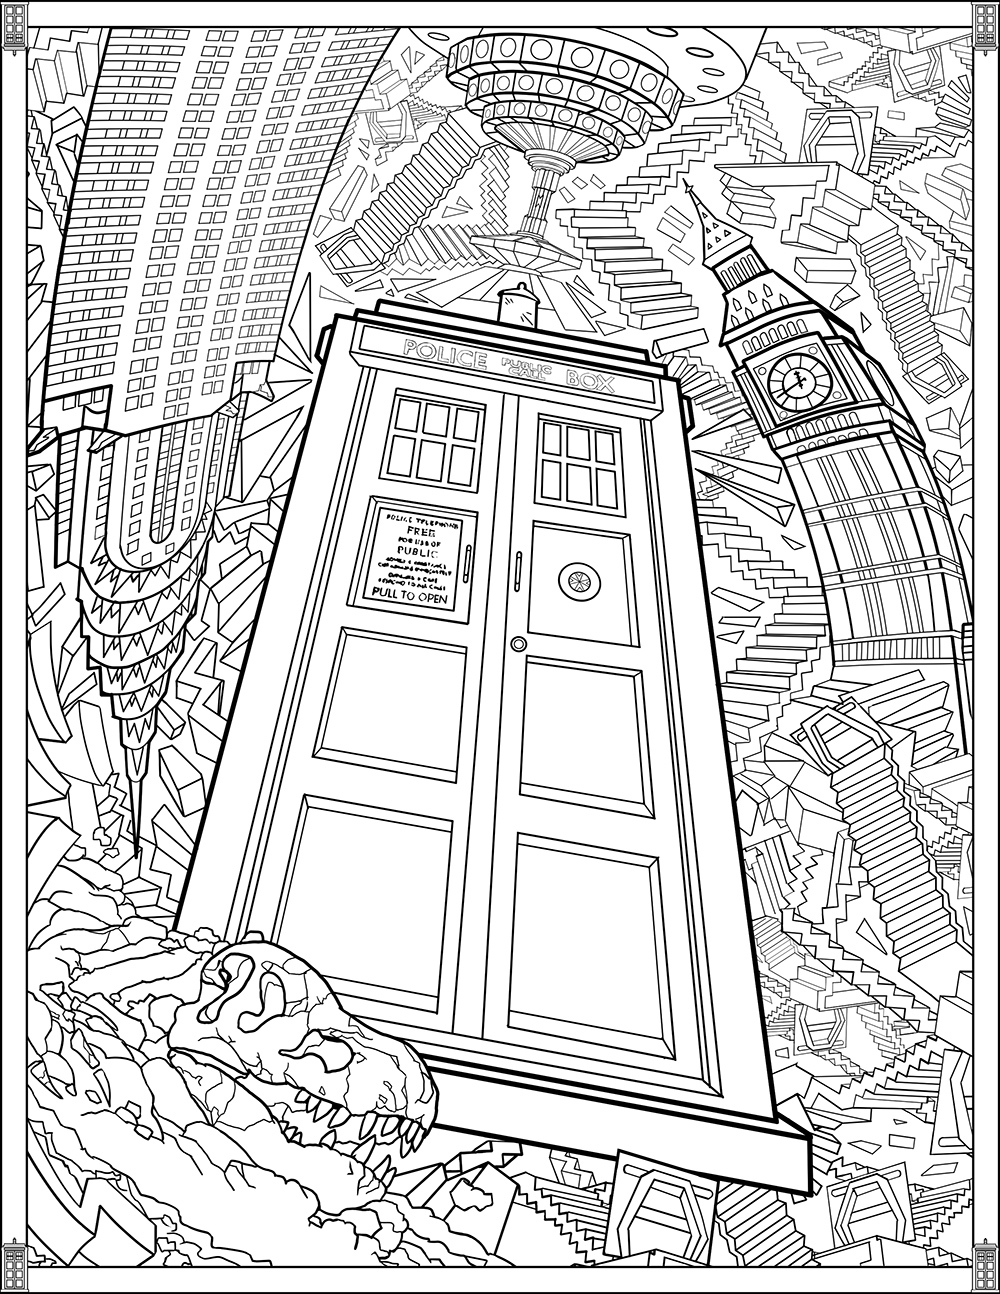 tardis colouring pages tardis outline by callmepin on deviantart pages tardis colouring